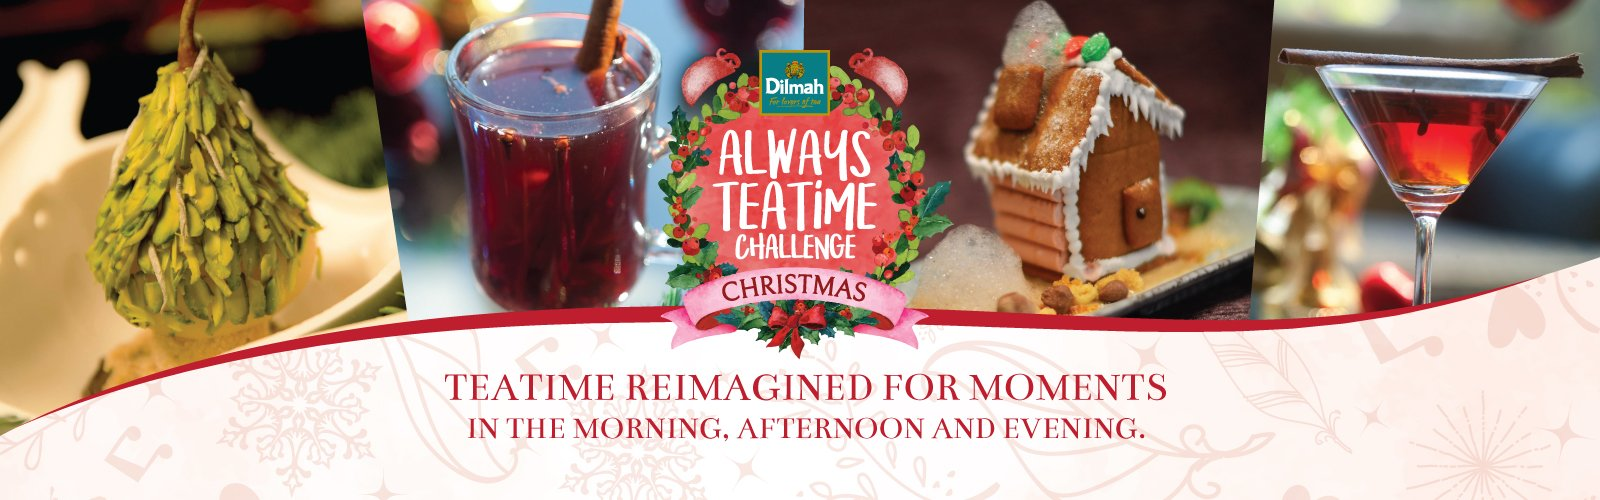 Dilmah Always Teatime Challenge 2017 - Christmas Edition